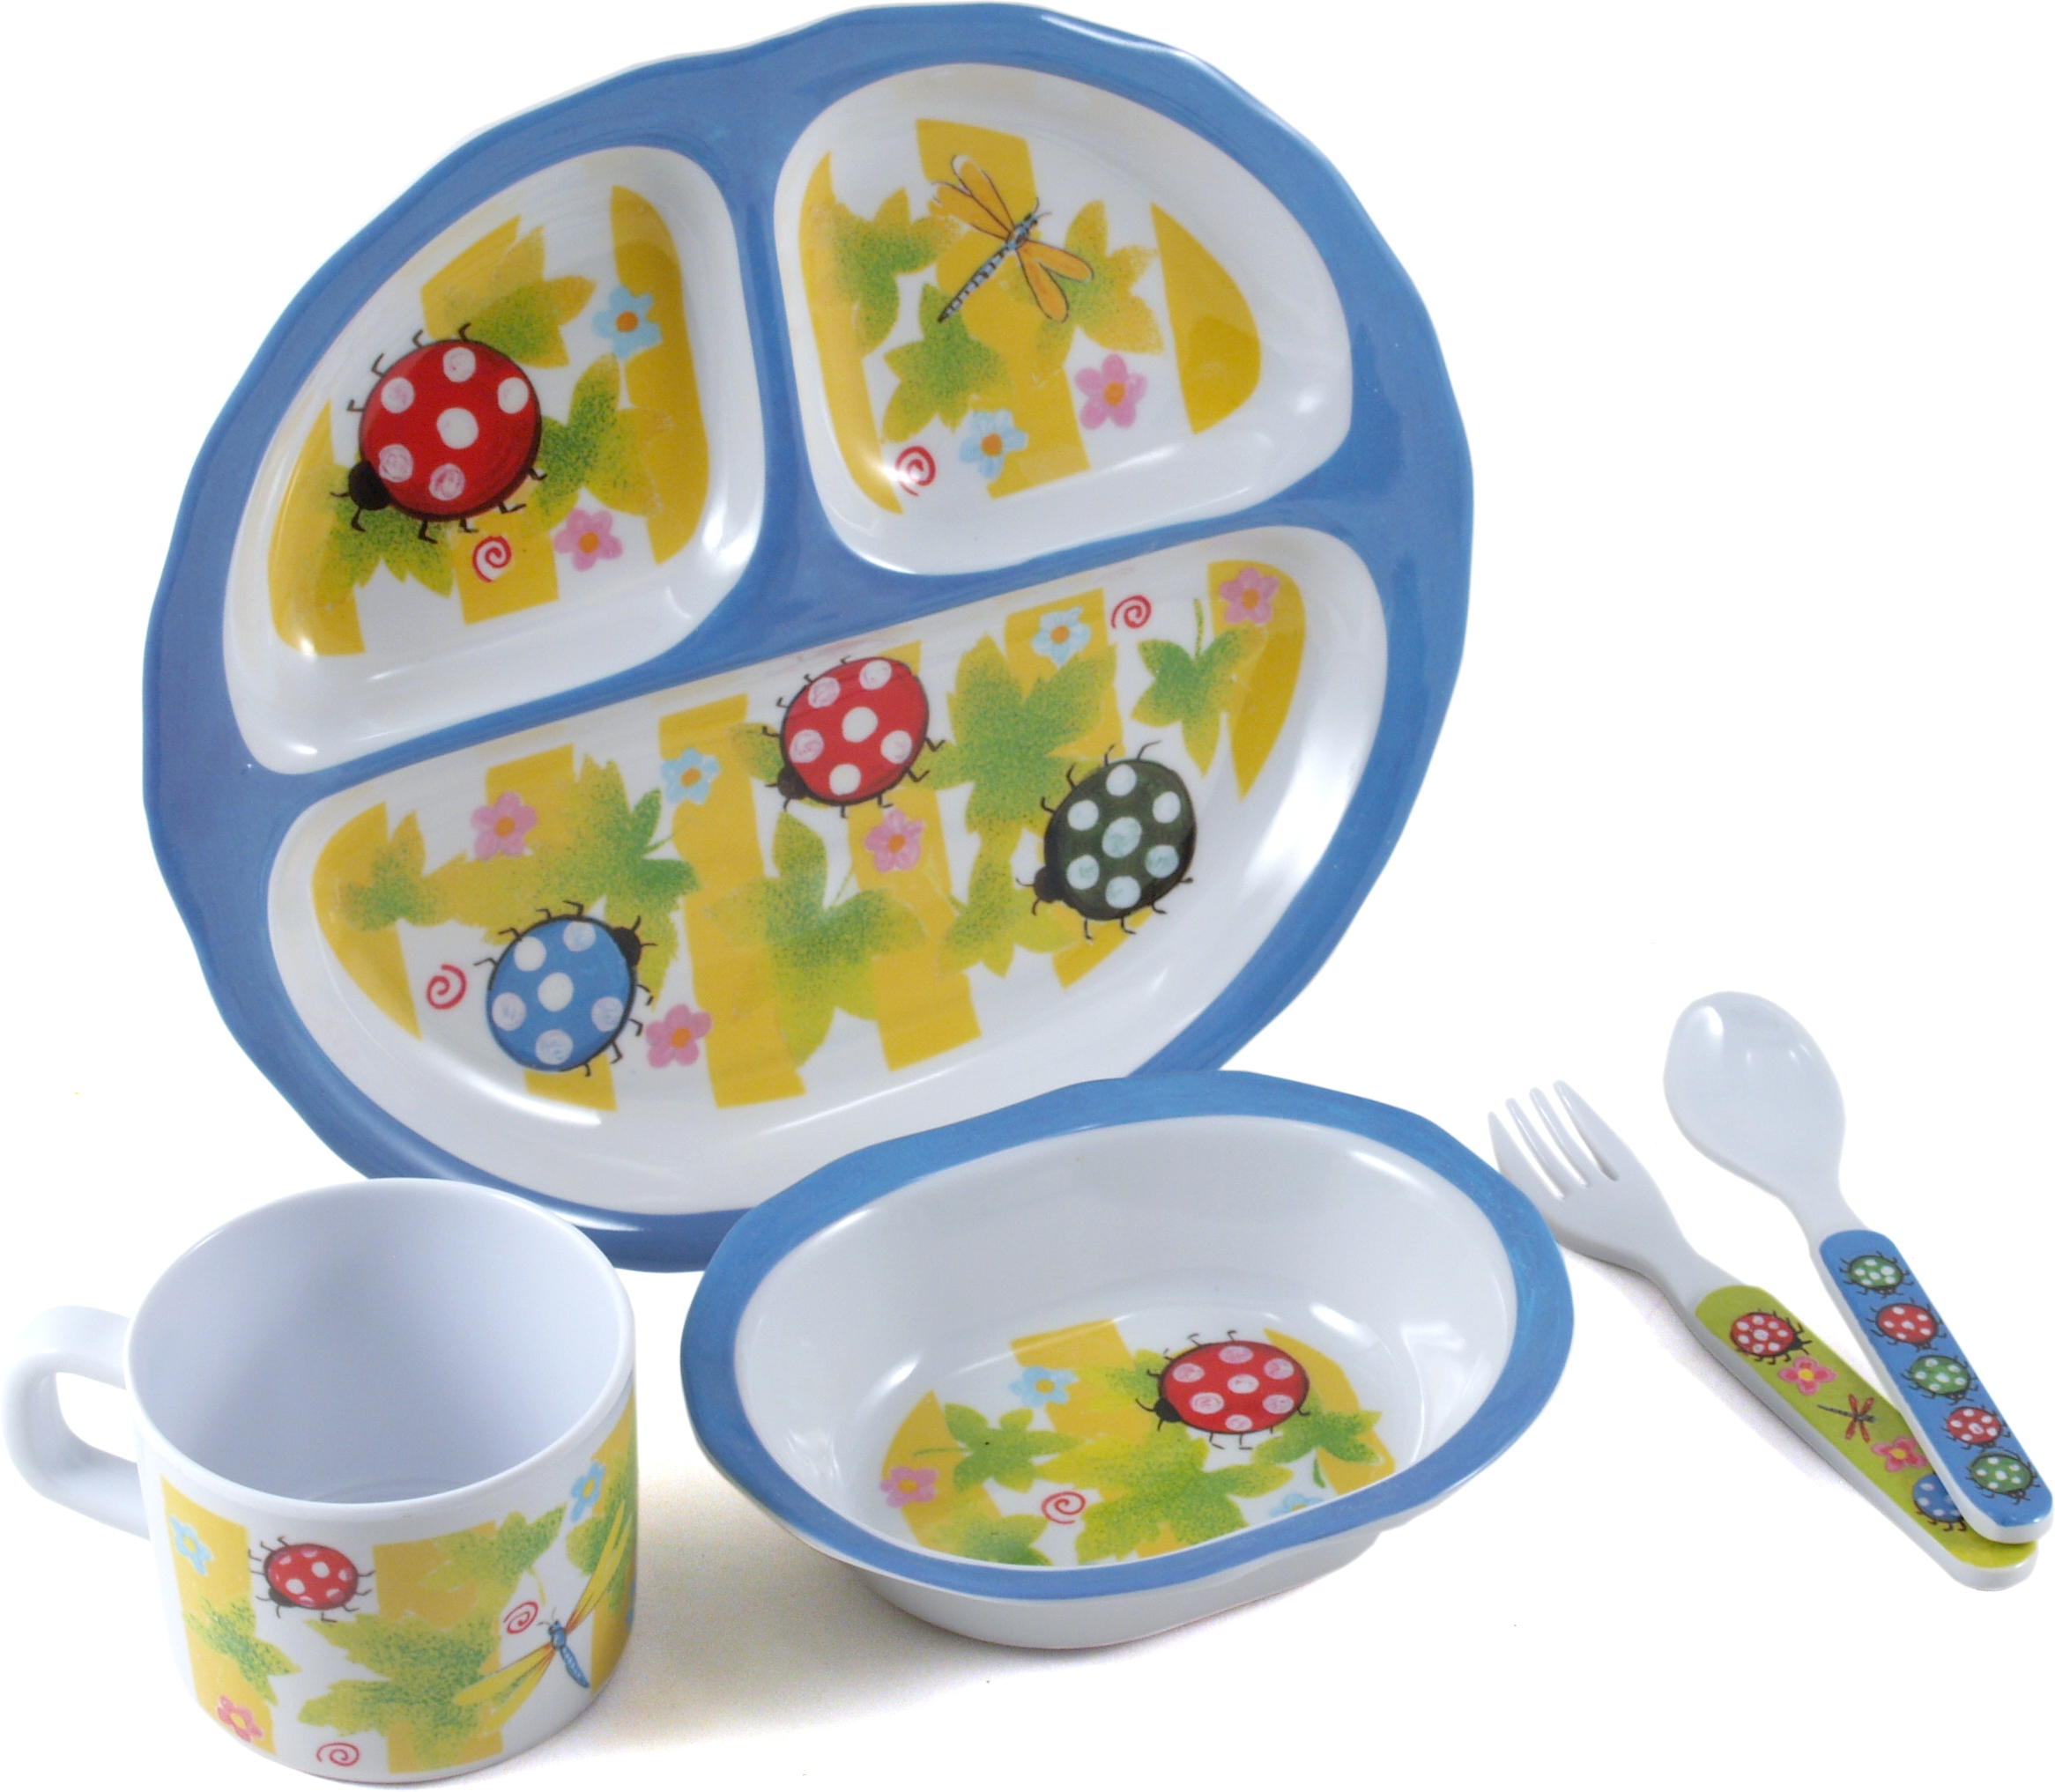 Home Essentials Kids Bugaboo Melamine 5 Piece Oval Dinnerware Set